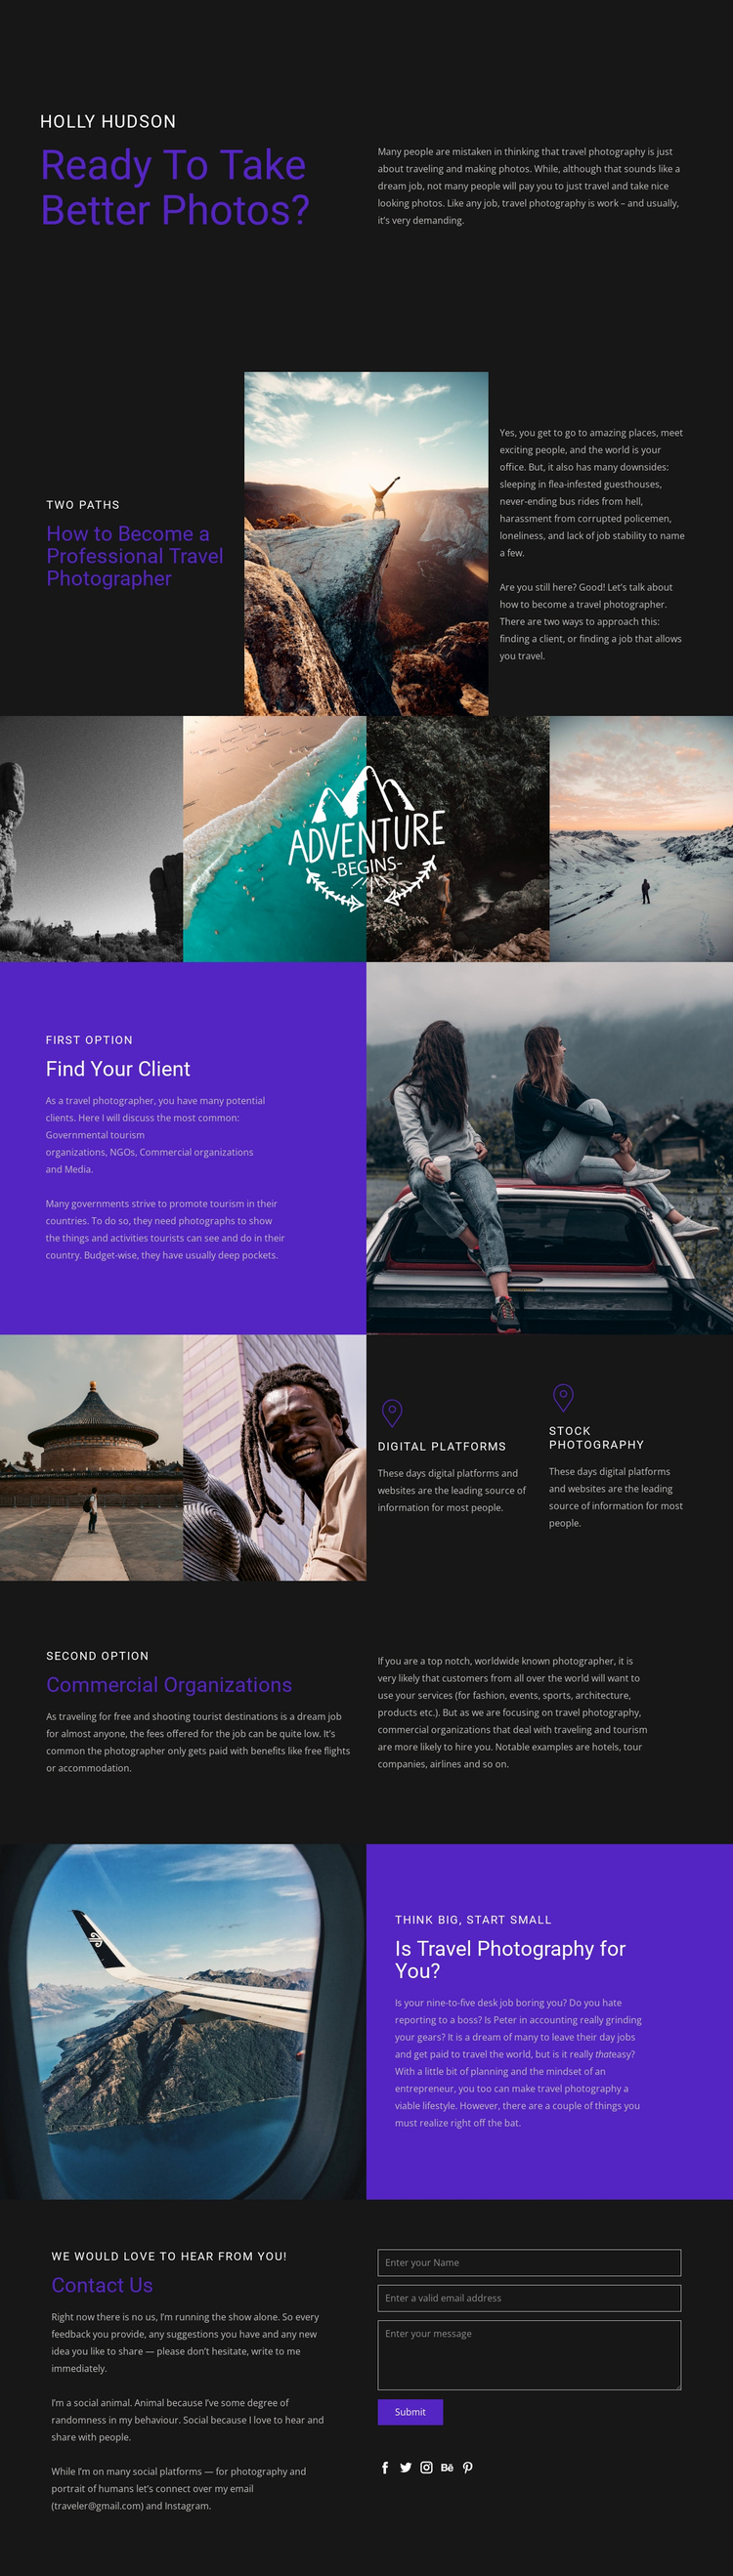 Travel and photography Website Builder Software